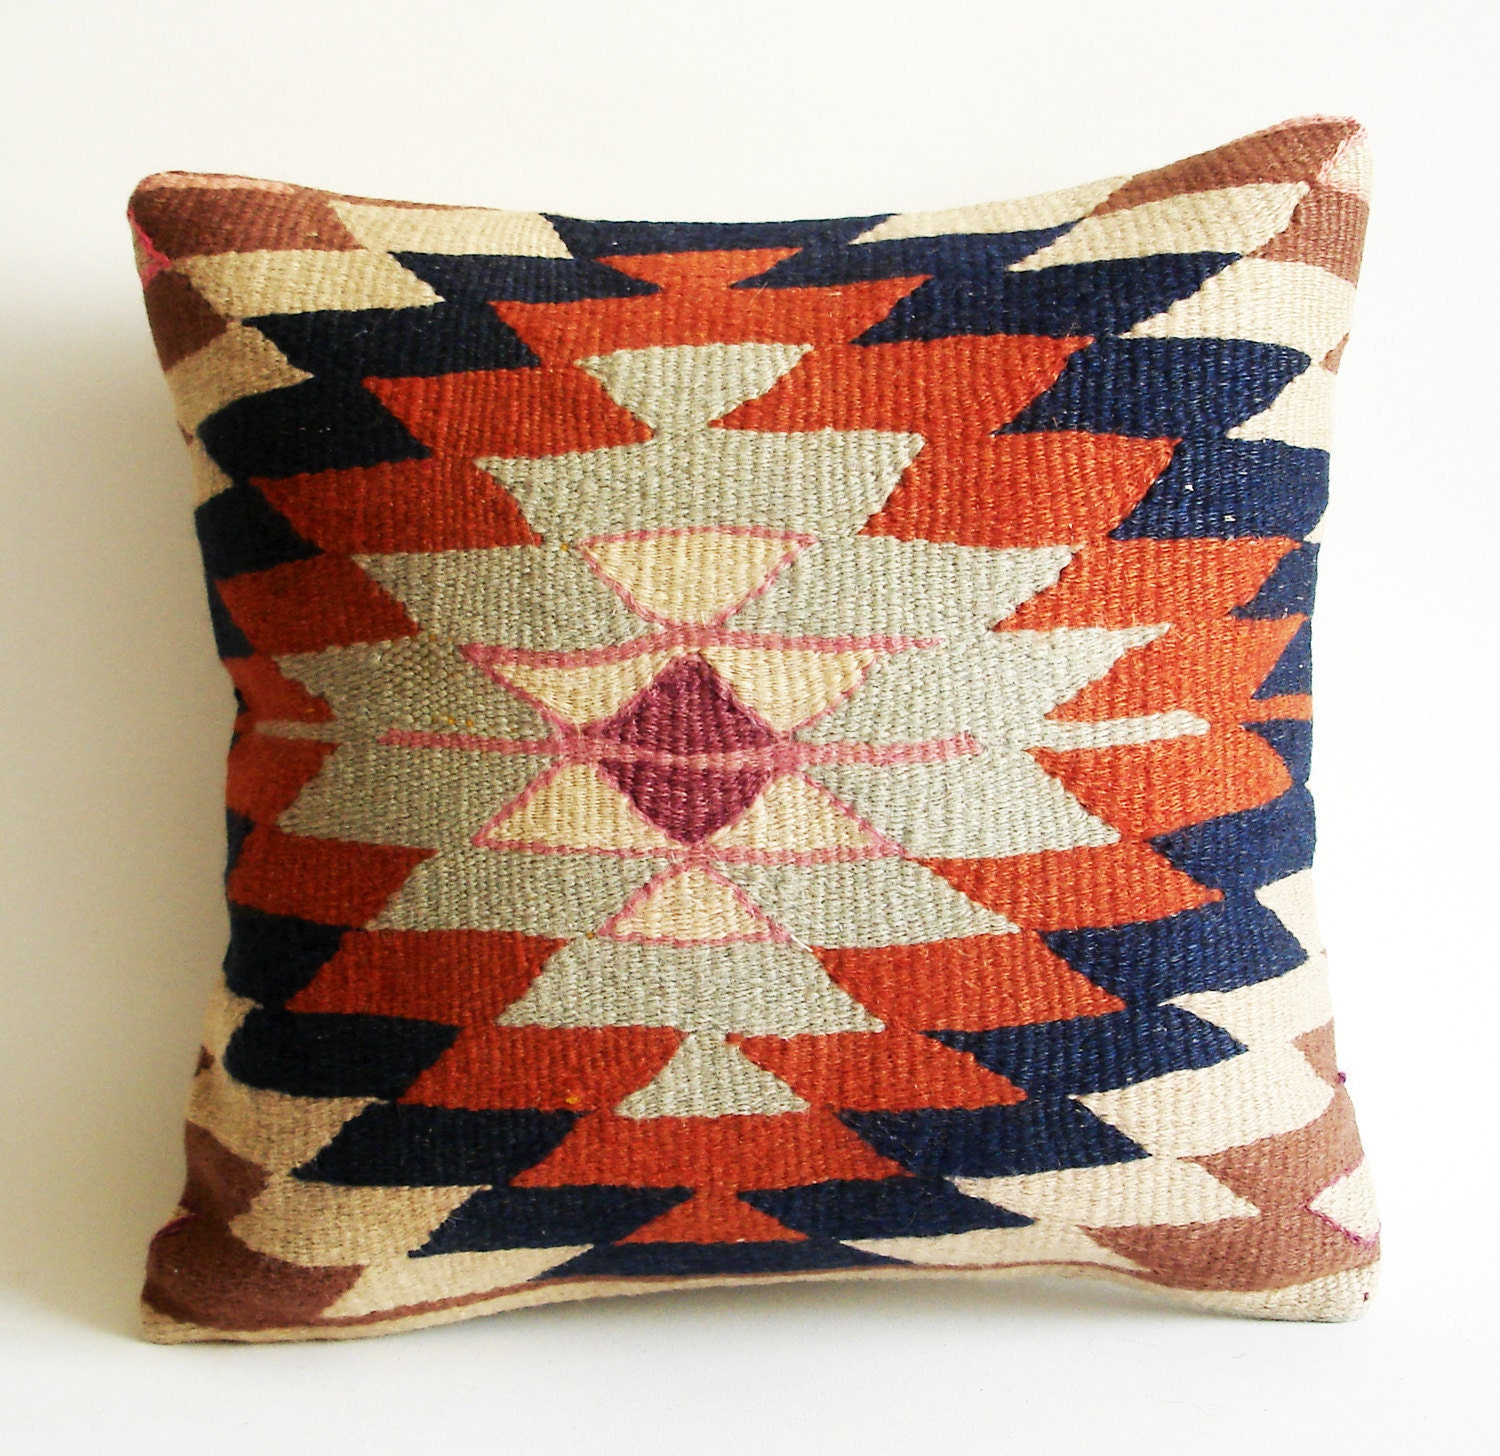 Sukan / Handwoven Vintage Turkish Kilim Pillow Cover by sukan